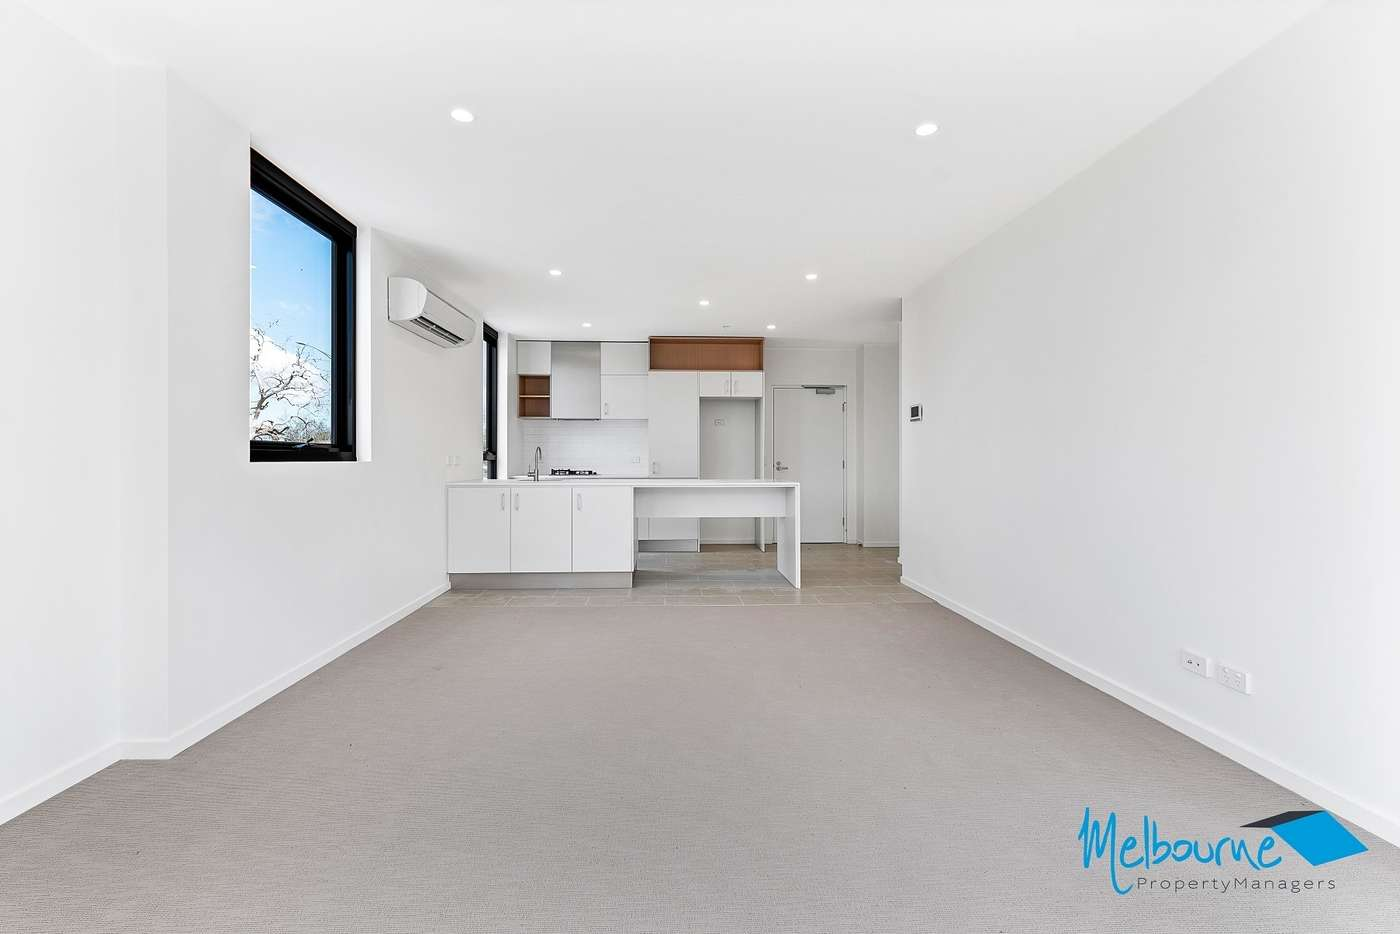 Main view of Homely apartment listing, 212/30 Bush Bvd, Mill Park VIC 3082